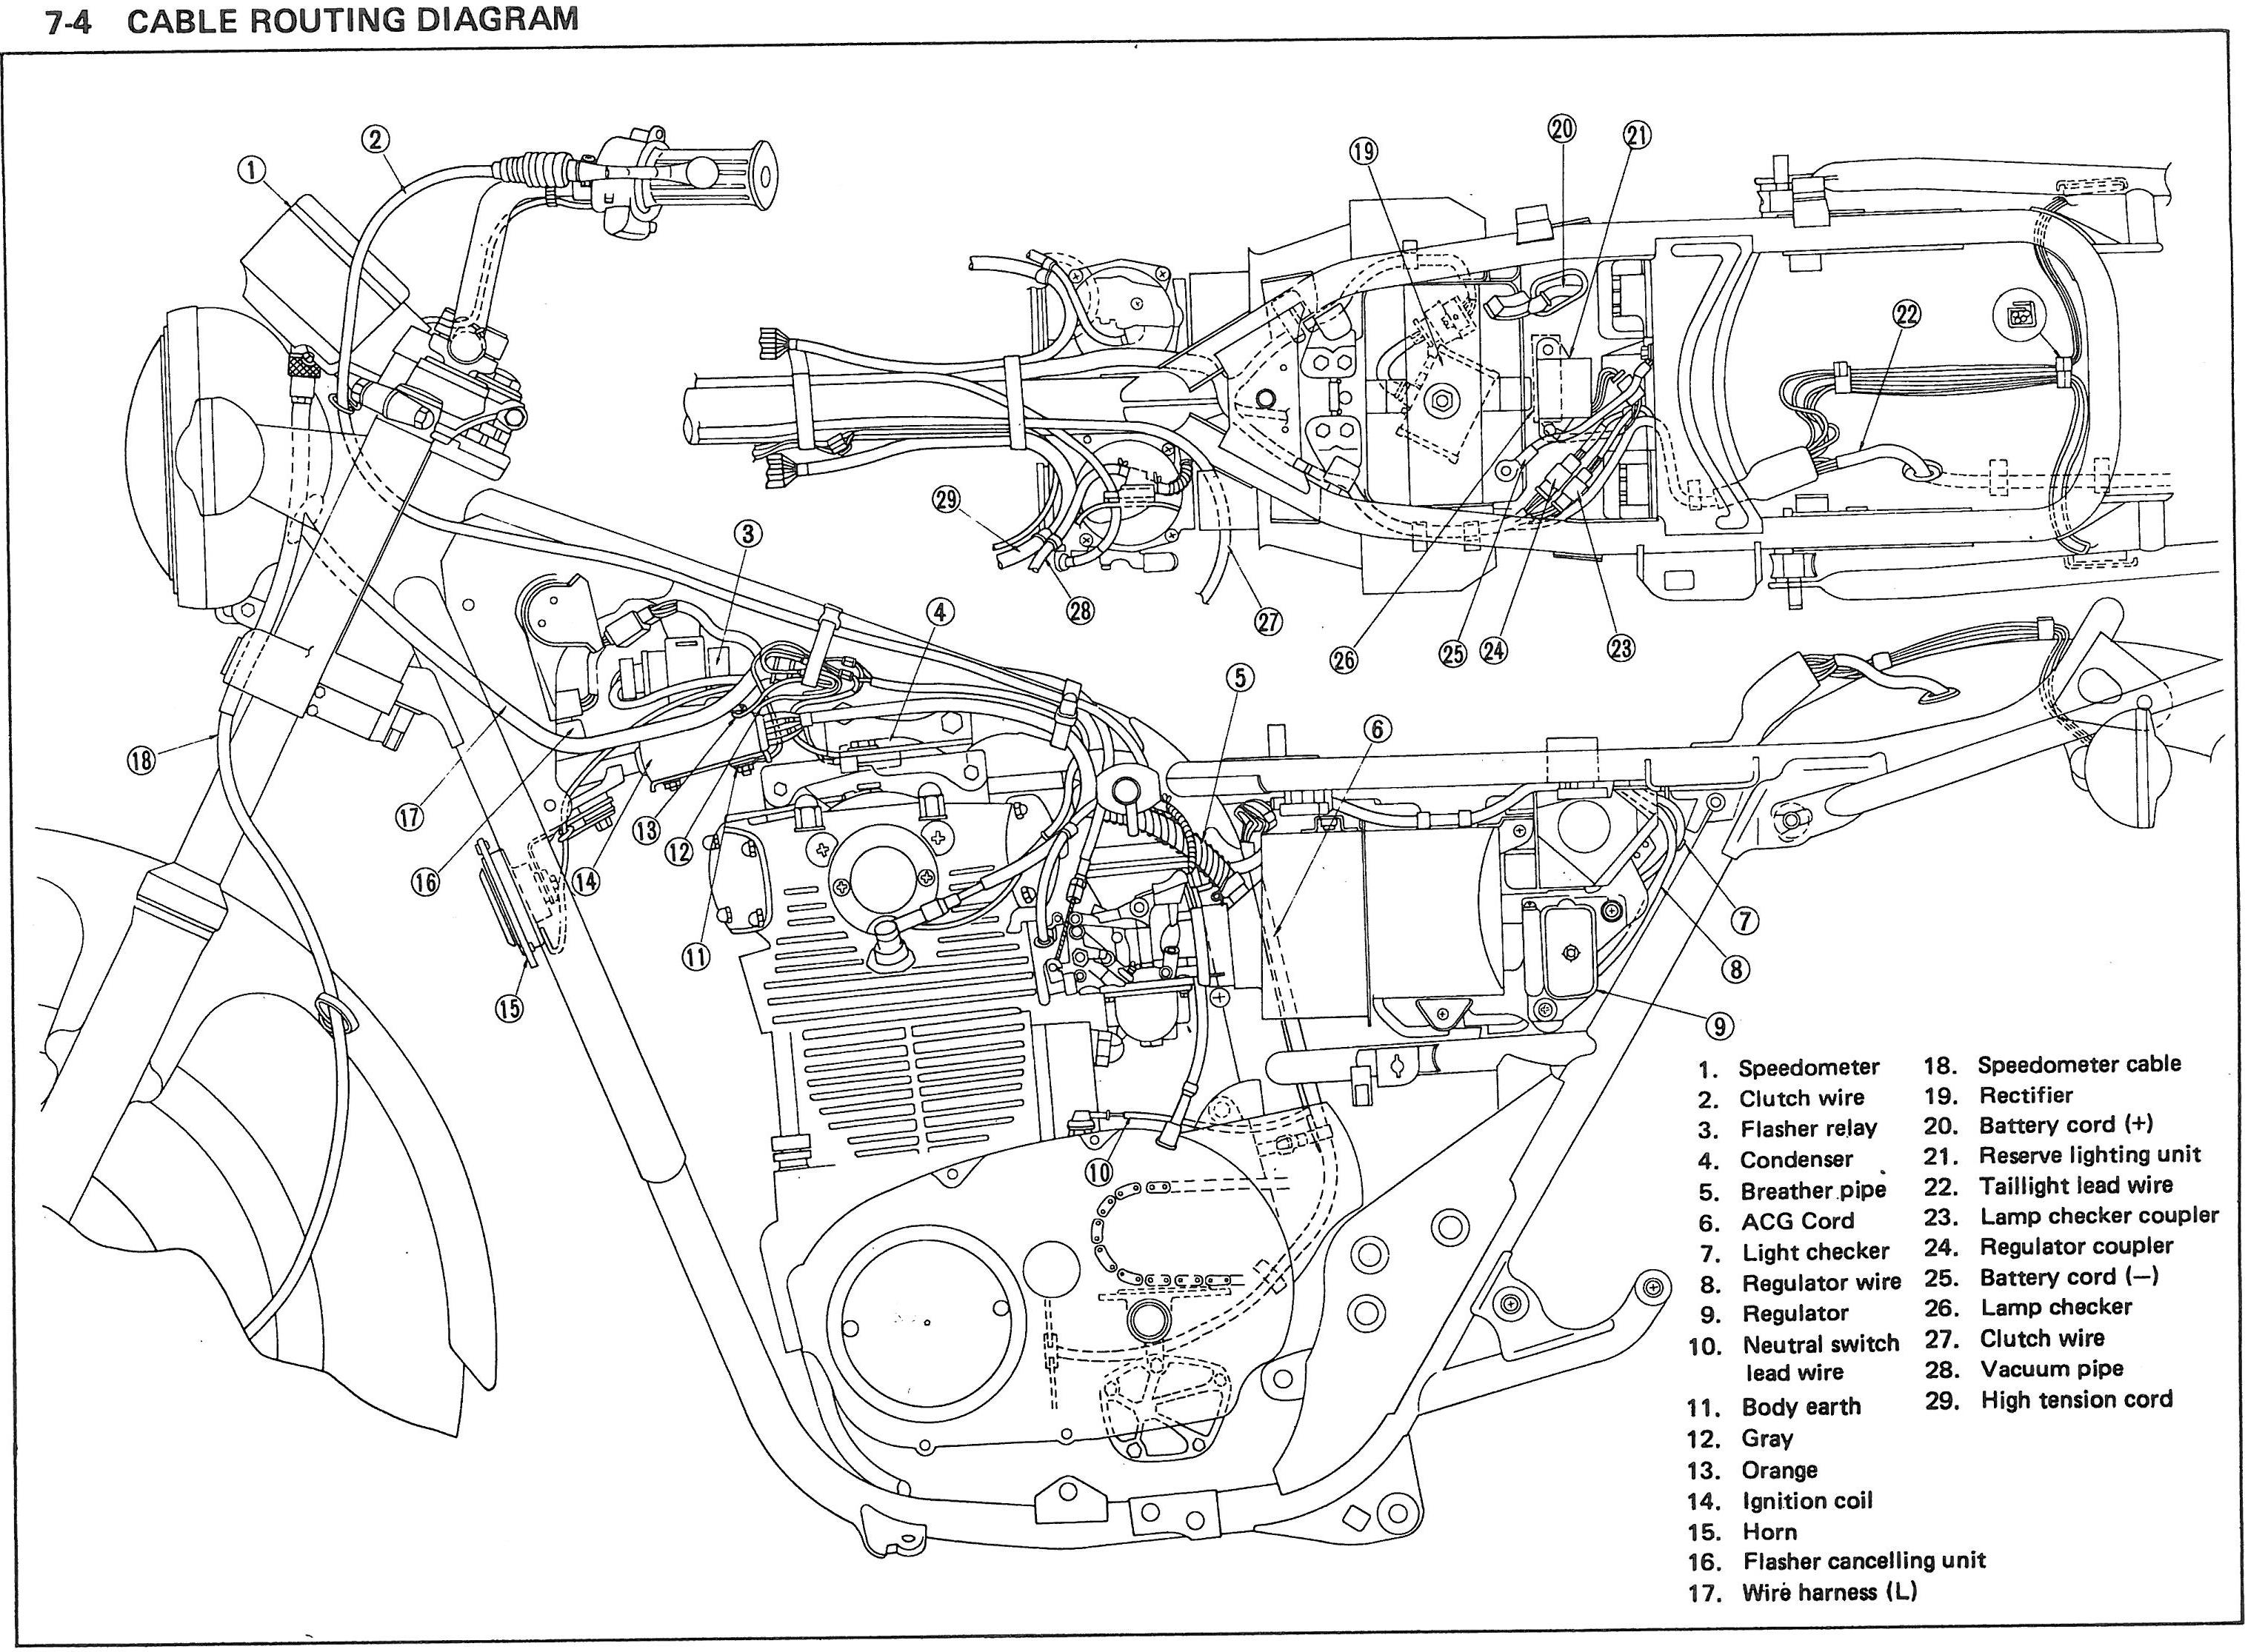 1981 Yamaha Xj550 Wiring Diagram 1983 Library1981